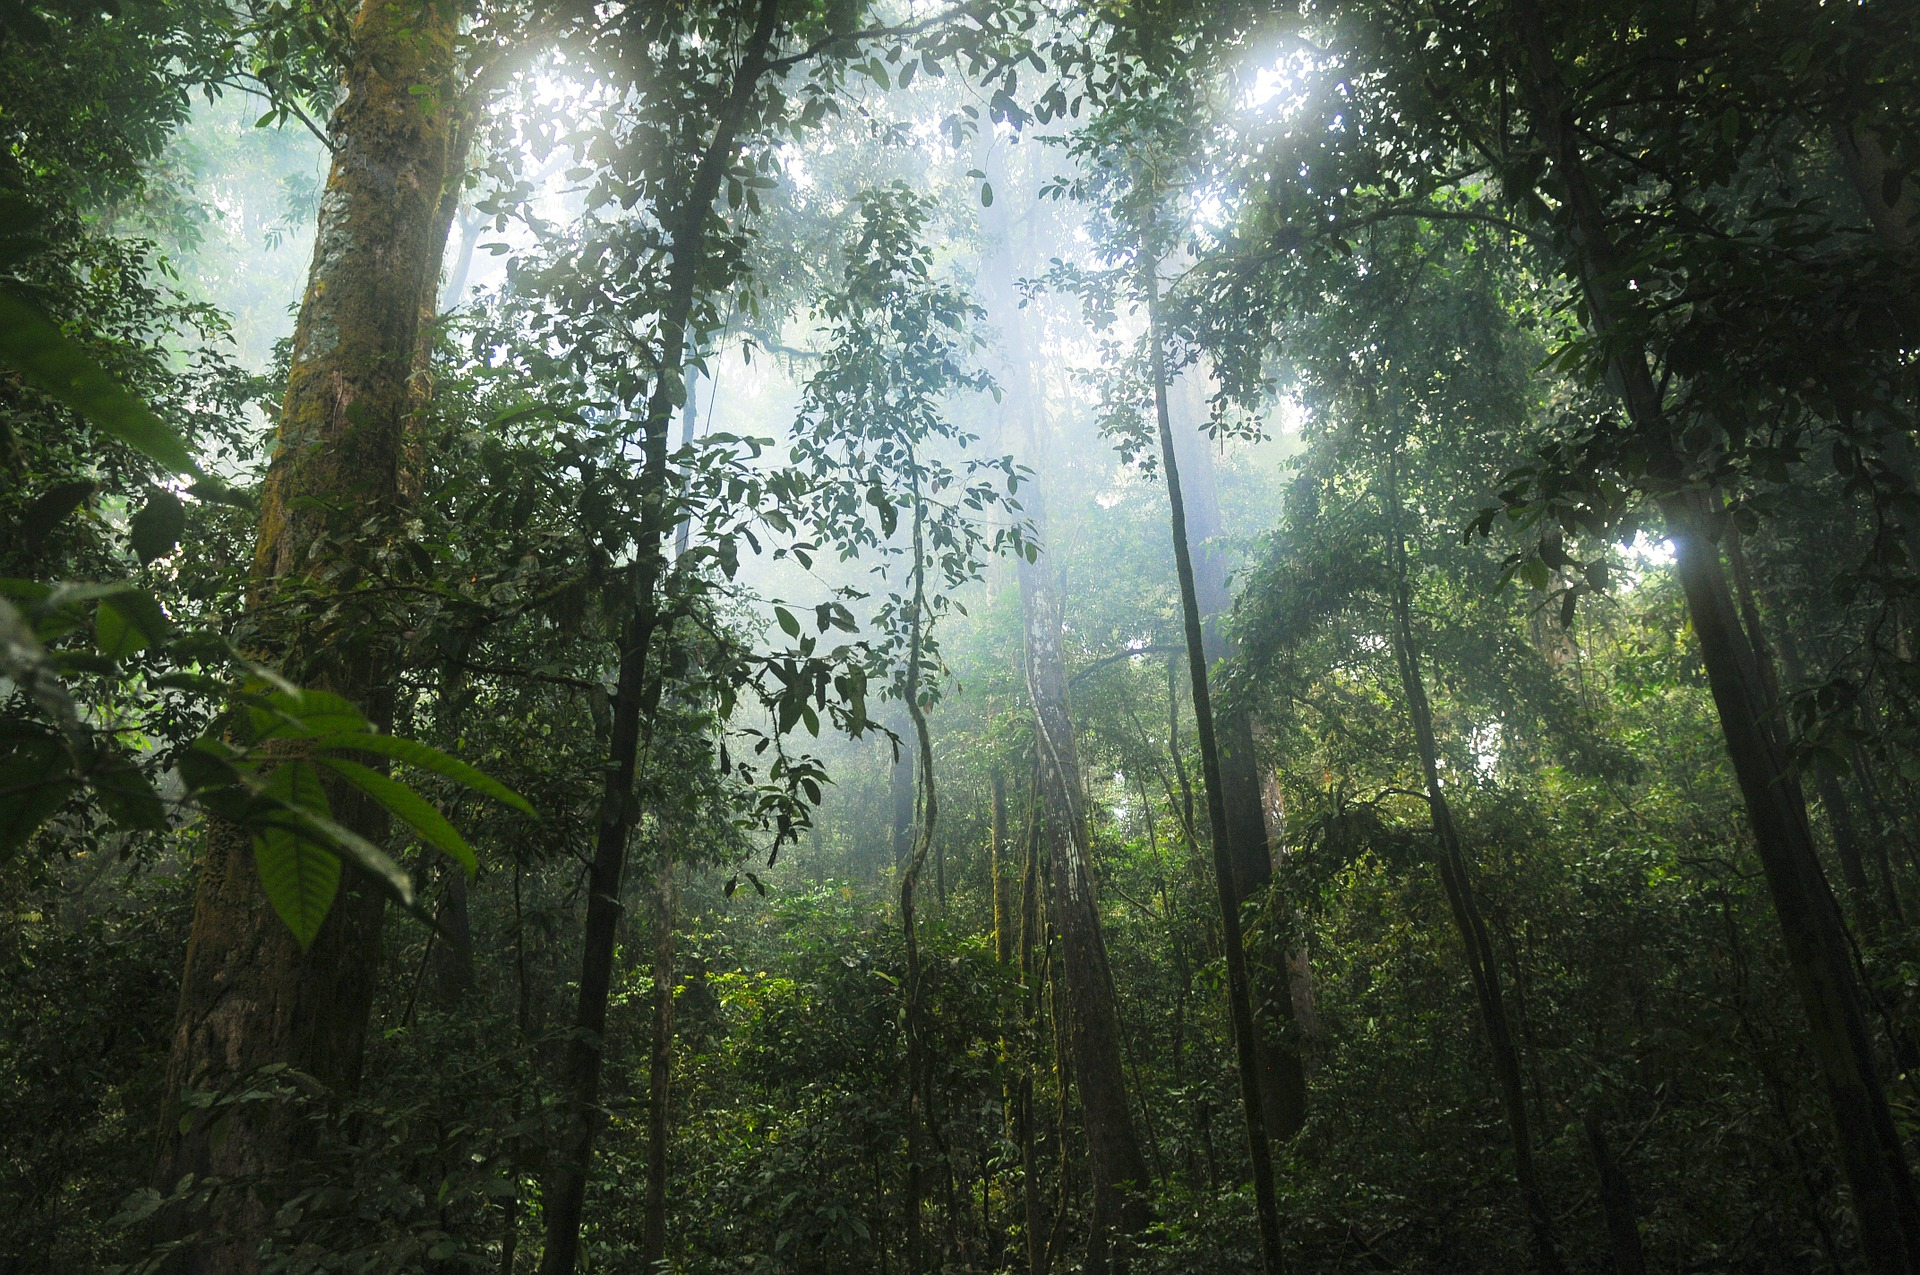 Tropical rainforests play a vital role in regulating climate and absorbing carbon, but climate change could greatly impact Amazon forests and reduce their CO2 storage abilities.